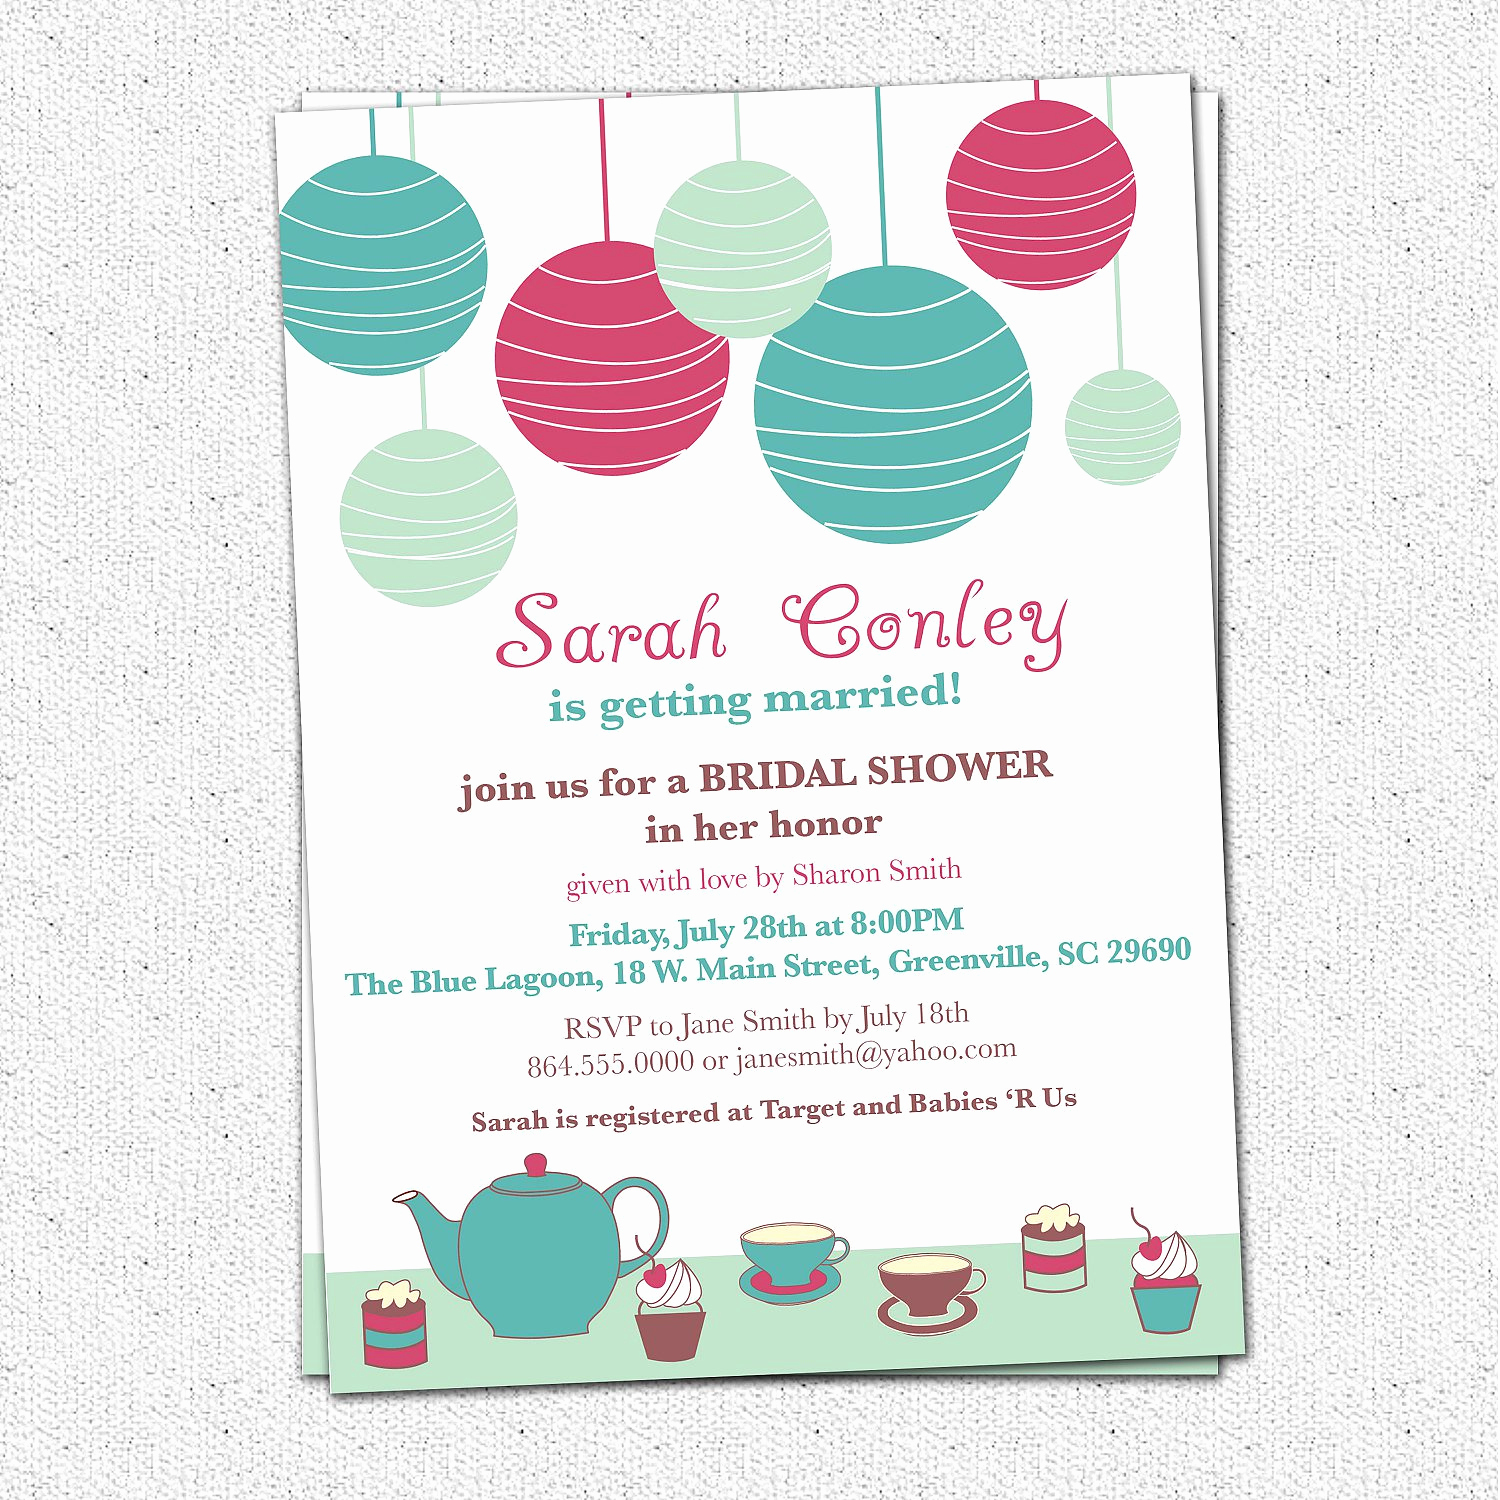 Gift Card Invitation Wording Lovely Bridal Shower Invitation Wording Bridal Shower